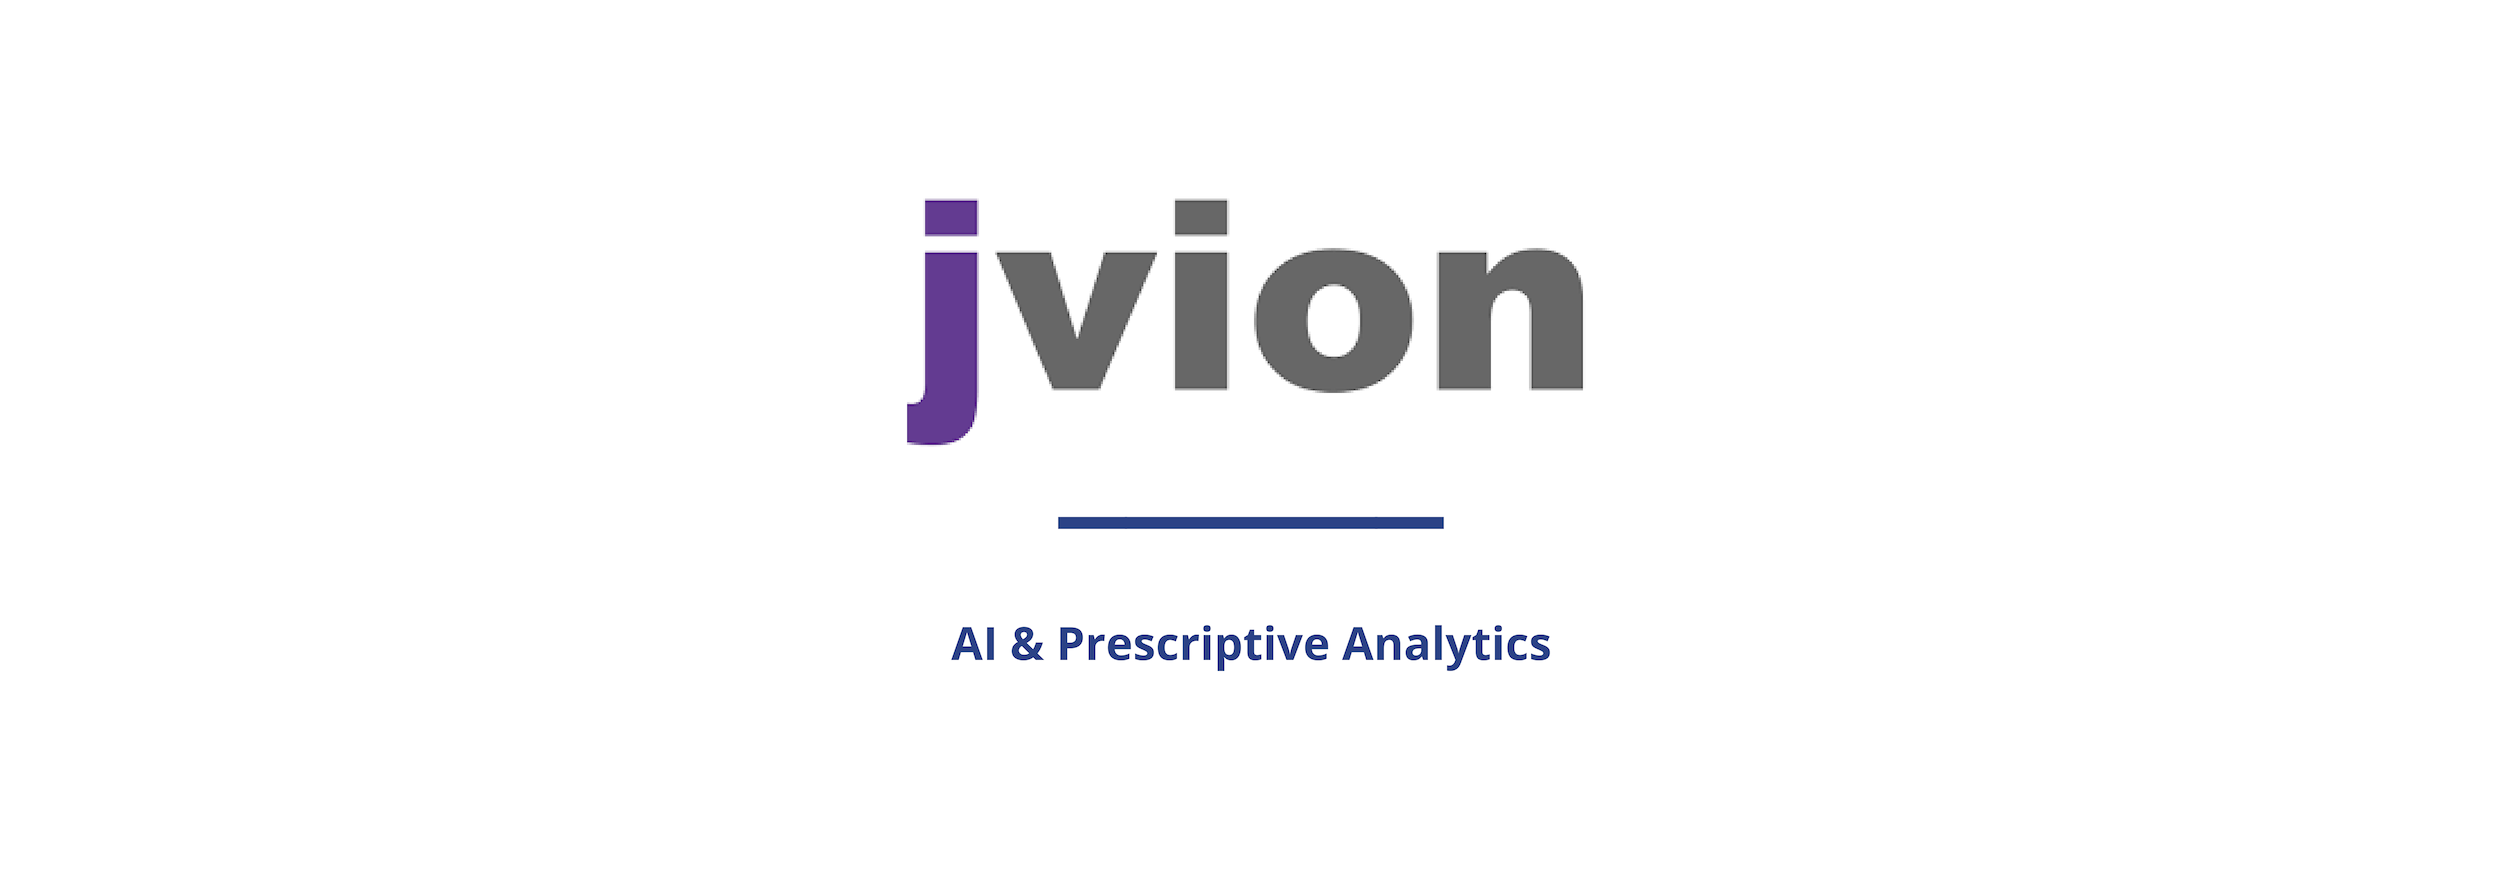 jvion logo for stream.png